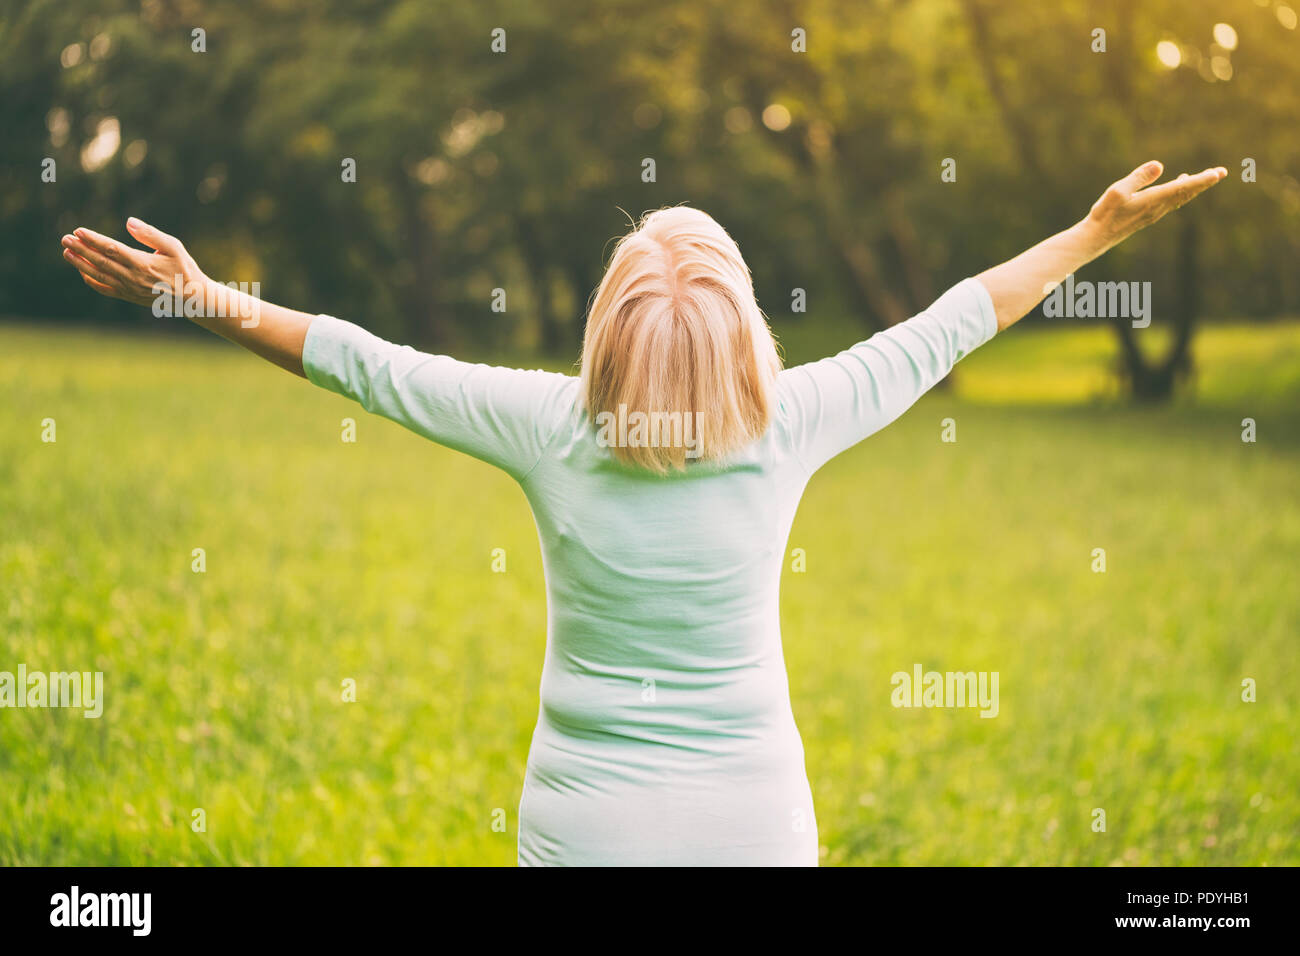 Senior woman enjoys with her arms outstretched in the nature.Image is intentionally toned. - Stock Image